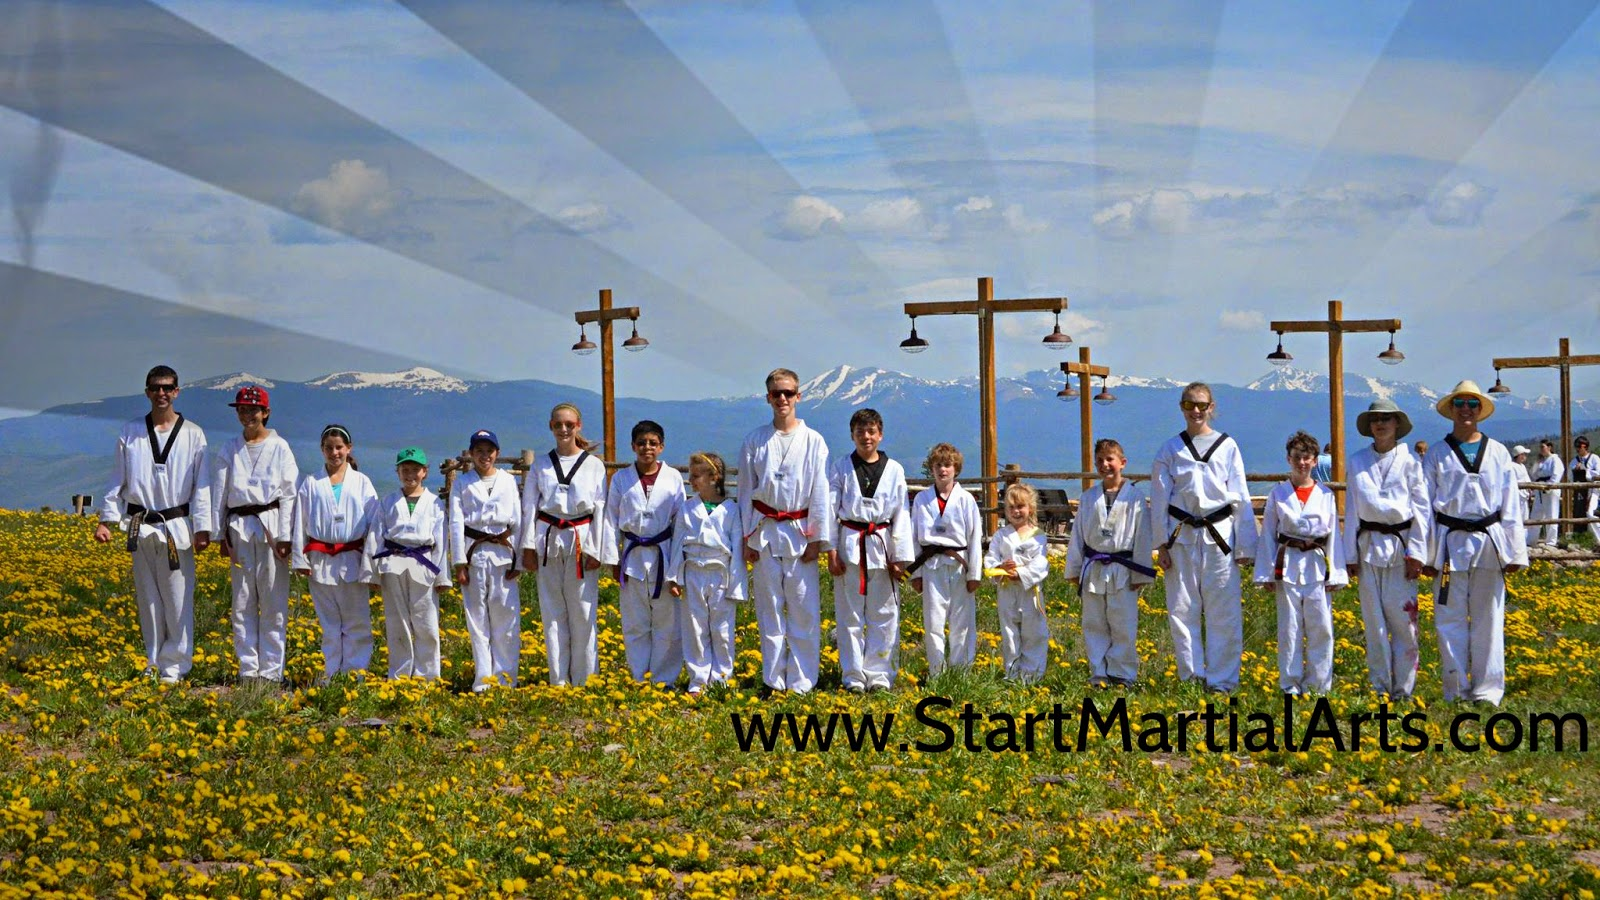 The Colorado Taekwondo Institute - Best martial arts school in the front range